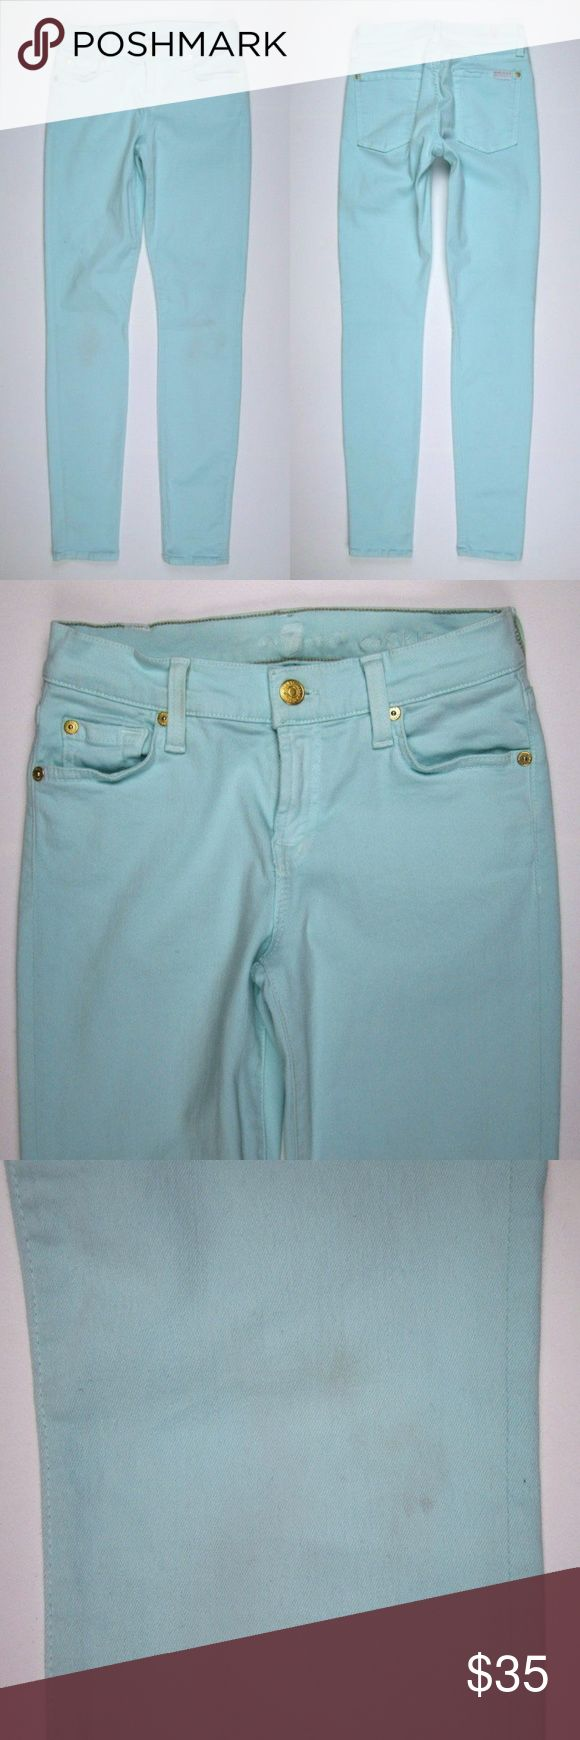 """7 for all Mankind 25 Skinny Mint Green Jeans 7FAM for all Mankind Womens 25 The Skinny Stretch Mint Green Jeans  Brand: 7 for all Mankind Labeled Size: 25  Measurements: Waist (flat across): 12.5"""" Rise: 8"""" Inseam: 29.5""""   In Used Condition with wash wear and light fading.  There is some very faint discoloration on the back of the knee area.  Please refer to pictures!  SKU: R18 7 For All Mankind Jeans Skinny"""